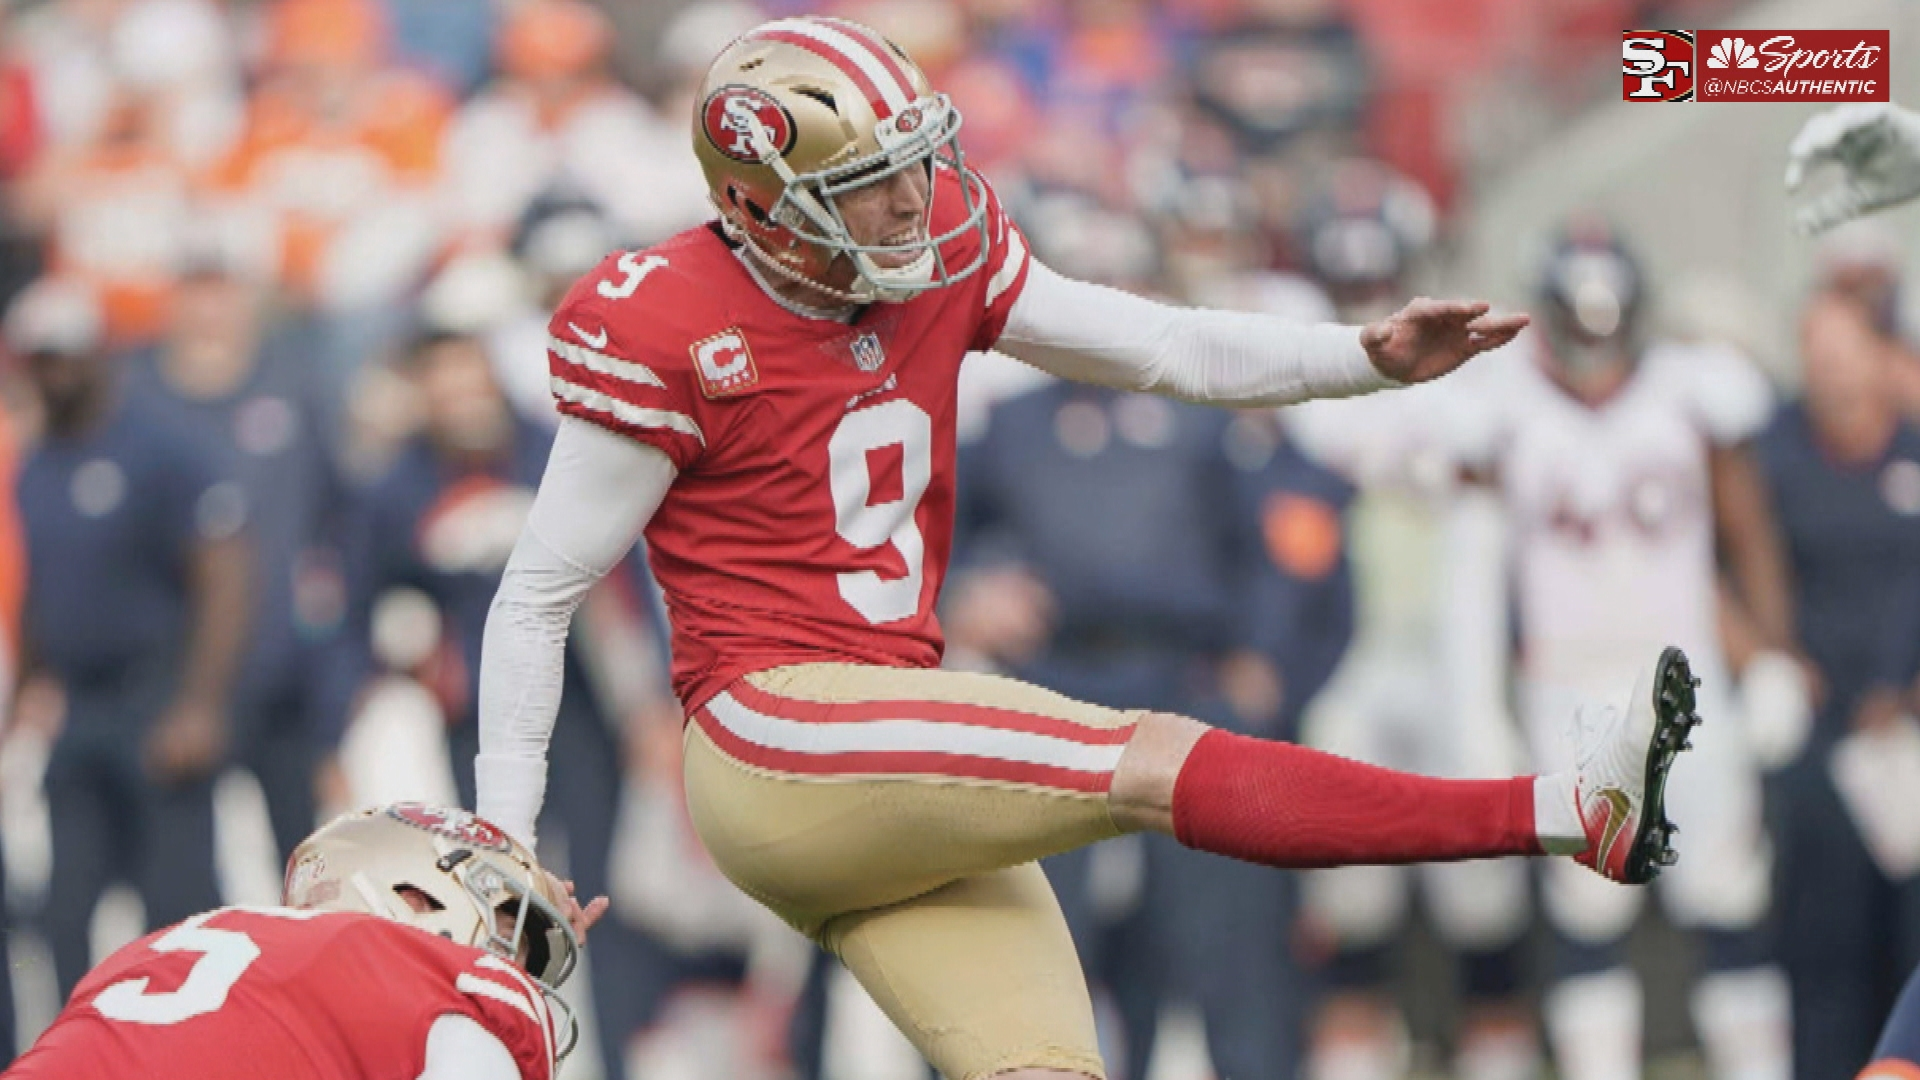 Robbie Gould and 49ers finally reach an agreement on a multi-year deal